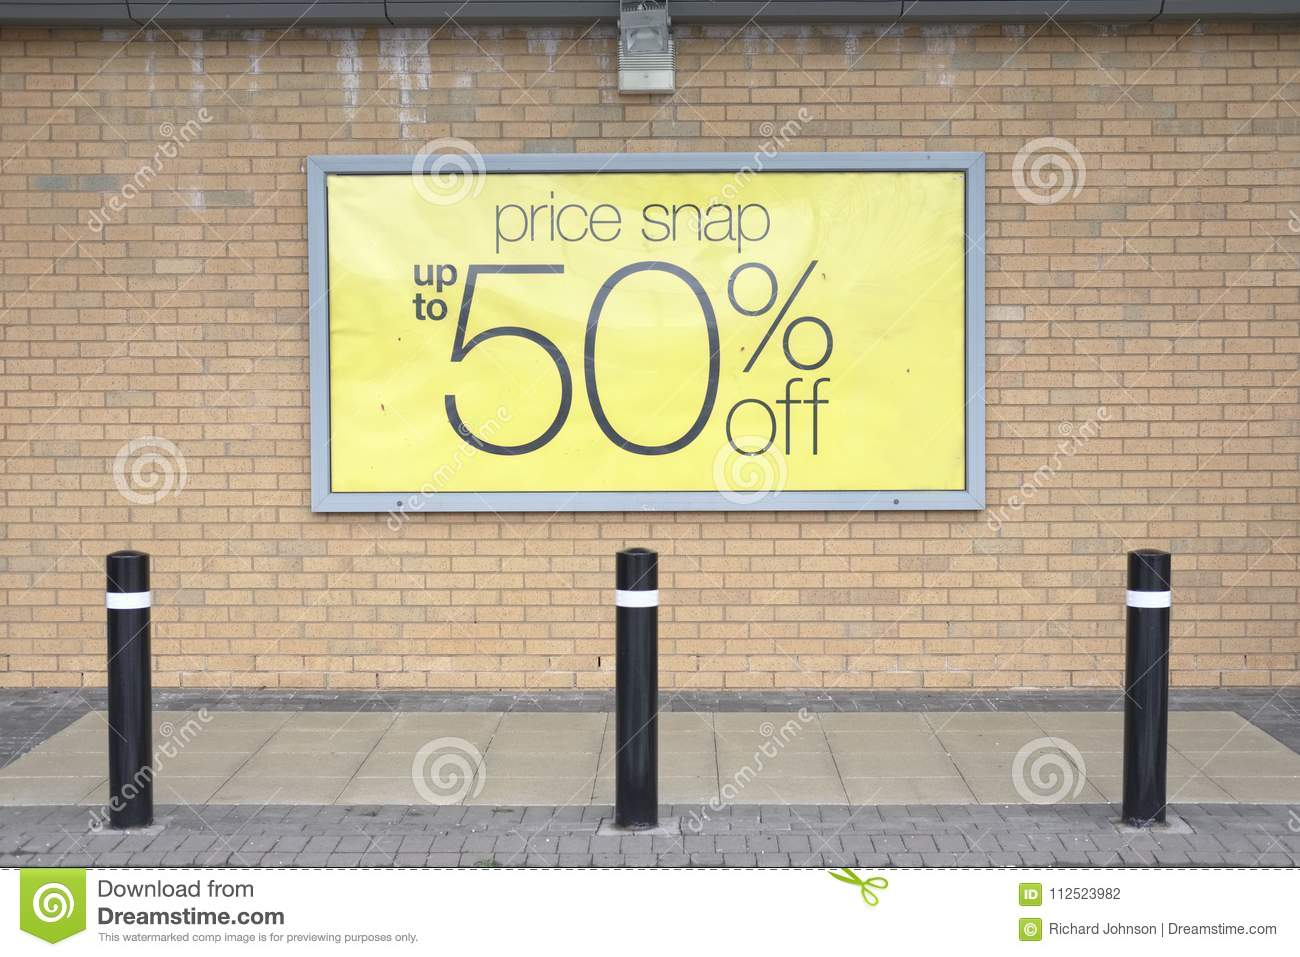 Awesome Half Price Sale Sign On Brick Wall Yellow Outside Shop Store Shopping Mall  Season Bargins For Shoppers